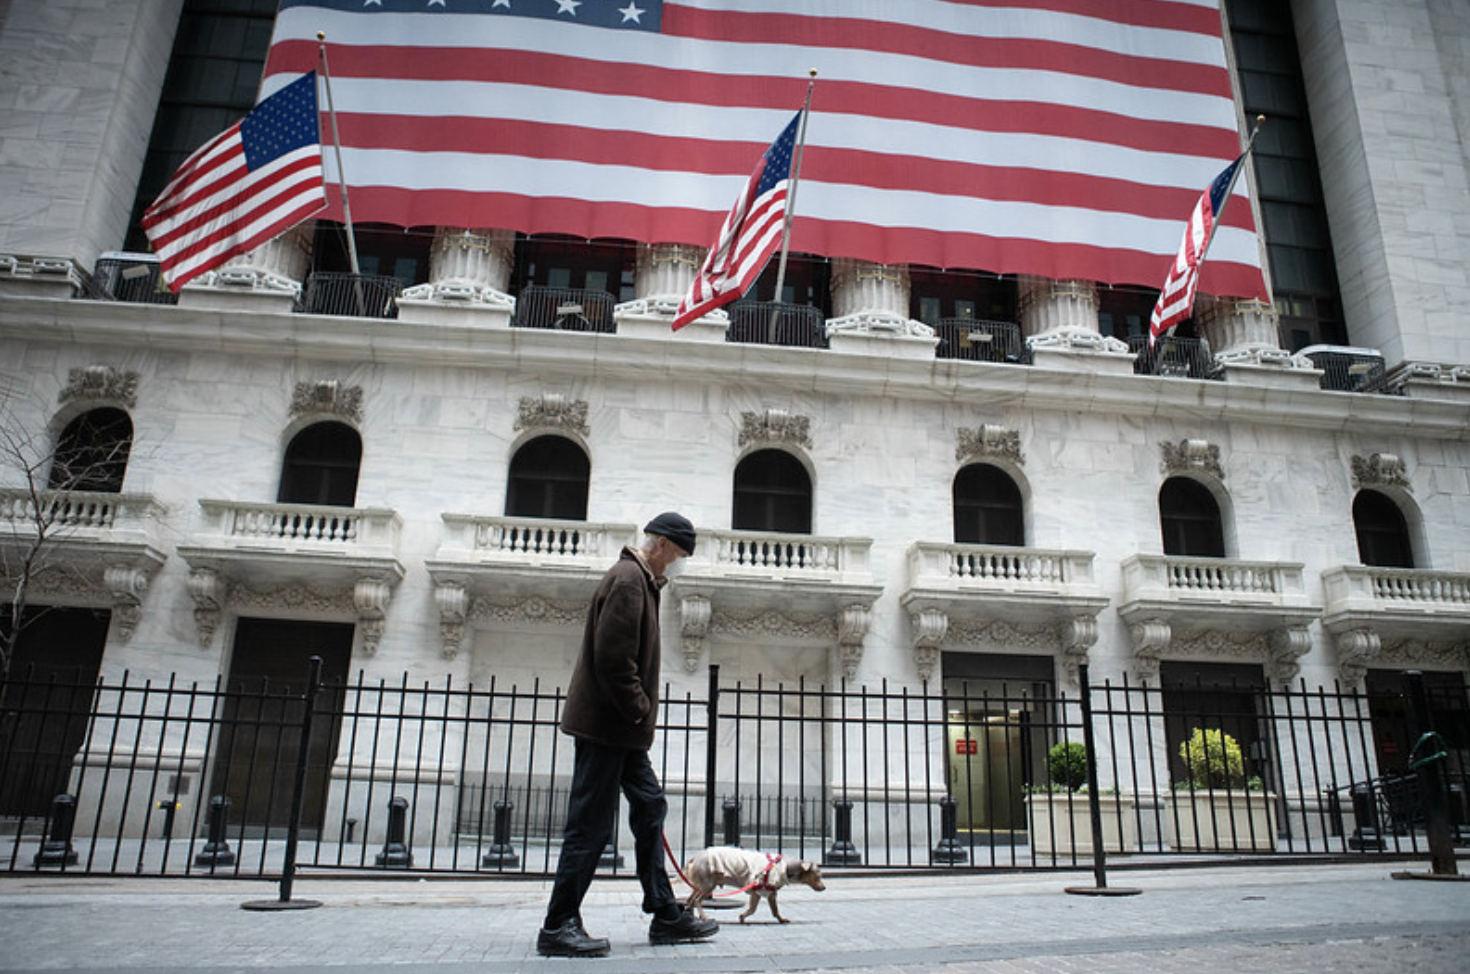 Man in a mask to prevent spread of the coronavirus walks his dog in front of the New York Stock Exchange, where the floor is closed to traders due to the virus. April 12, 2020 (Photo by Anthony Quintano) Creative Commons license via Flickr